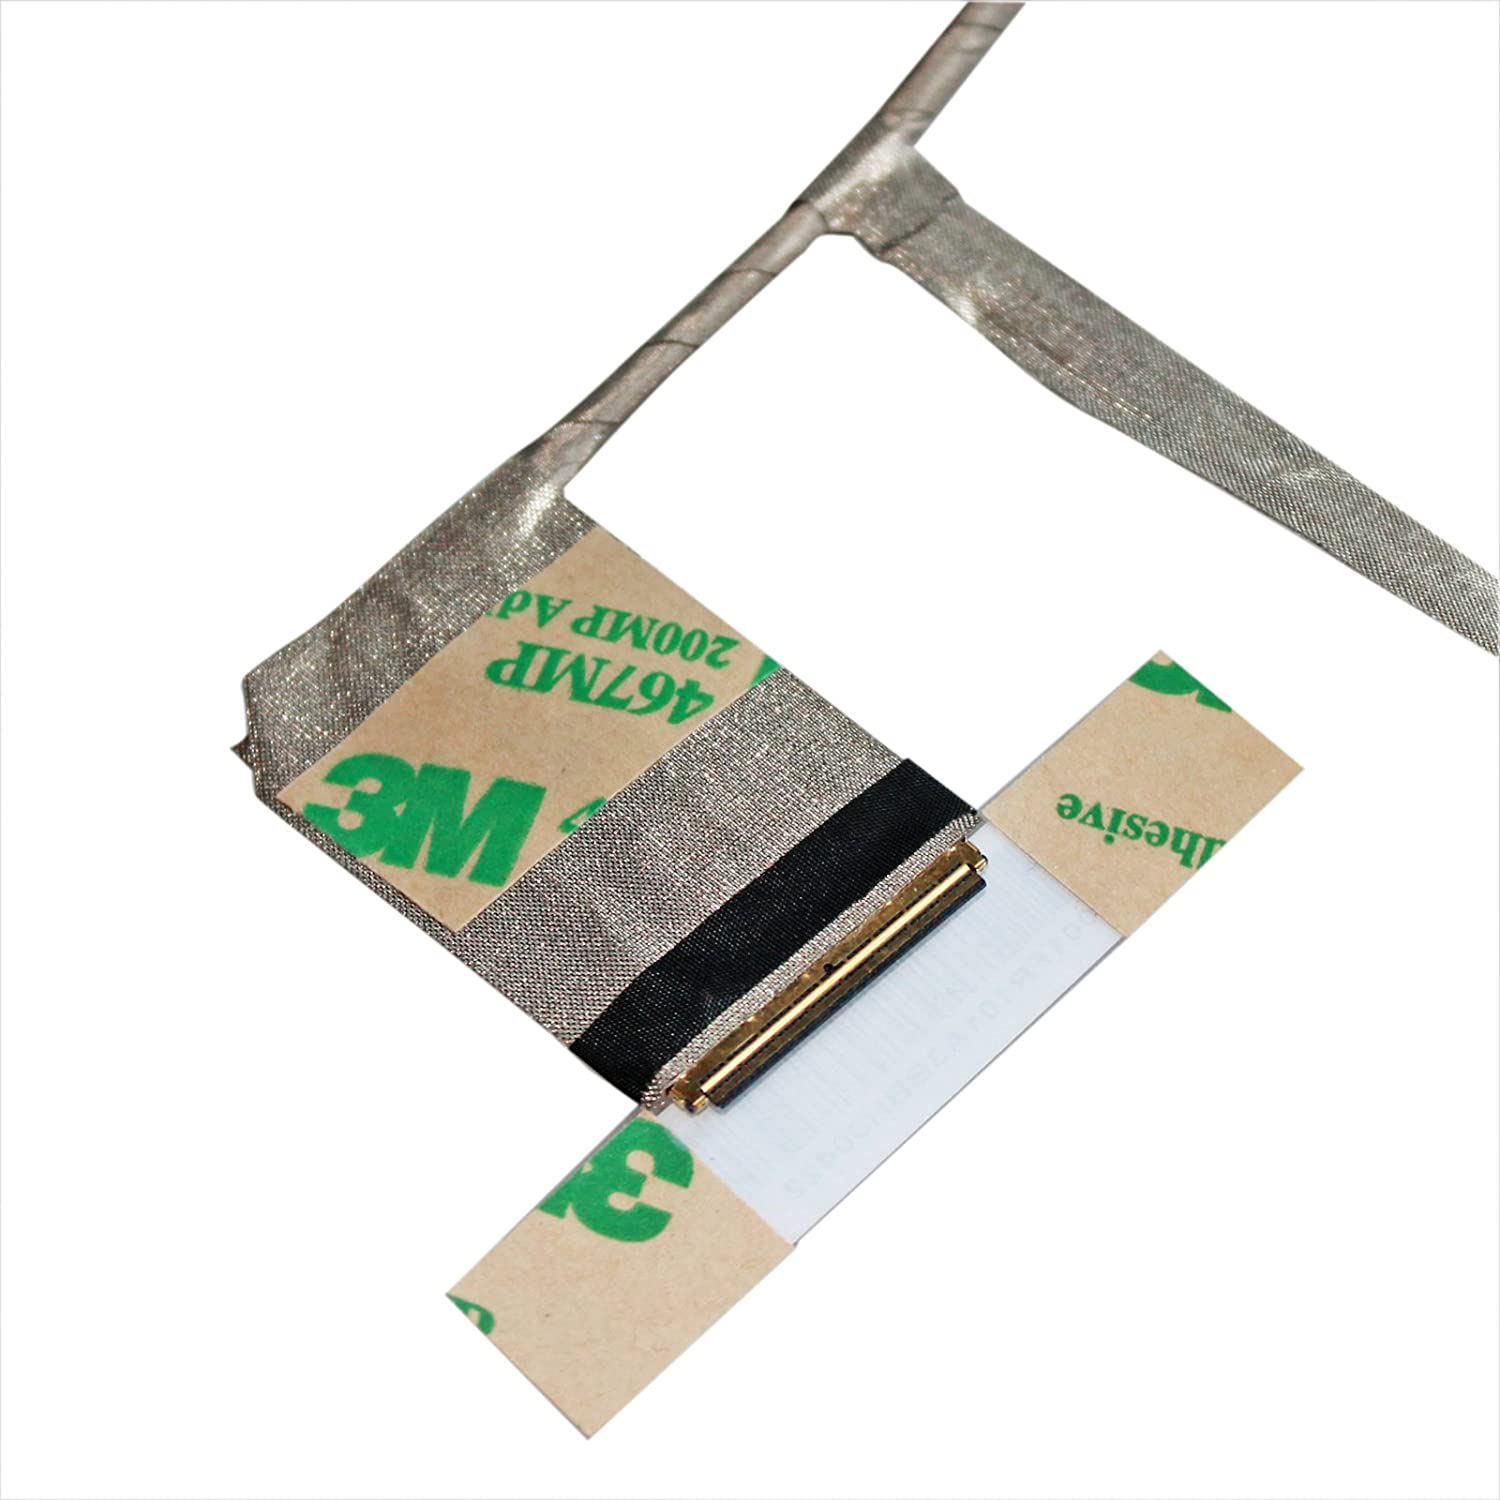 GinTai LCD LED LVDS Screen Display Cable Replacement for DC02001FR10 DC02001FR00